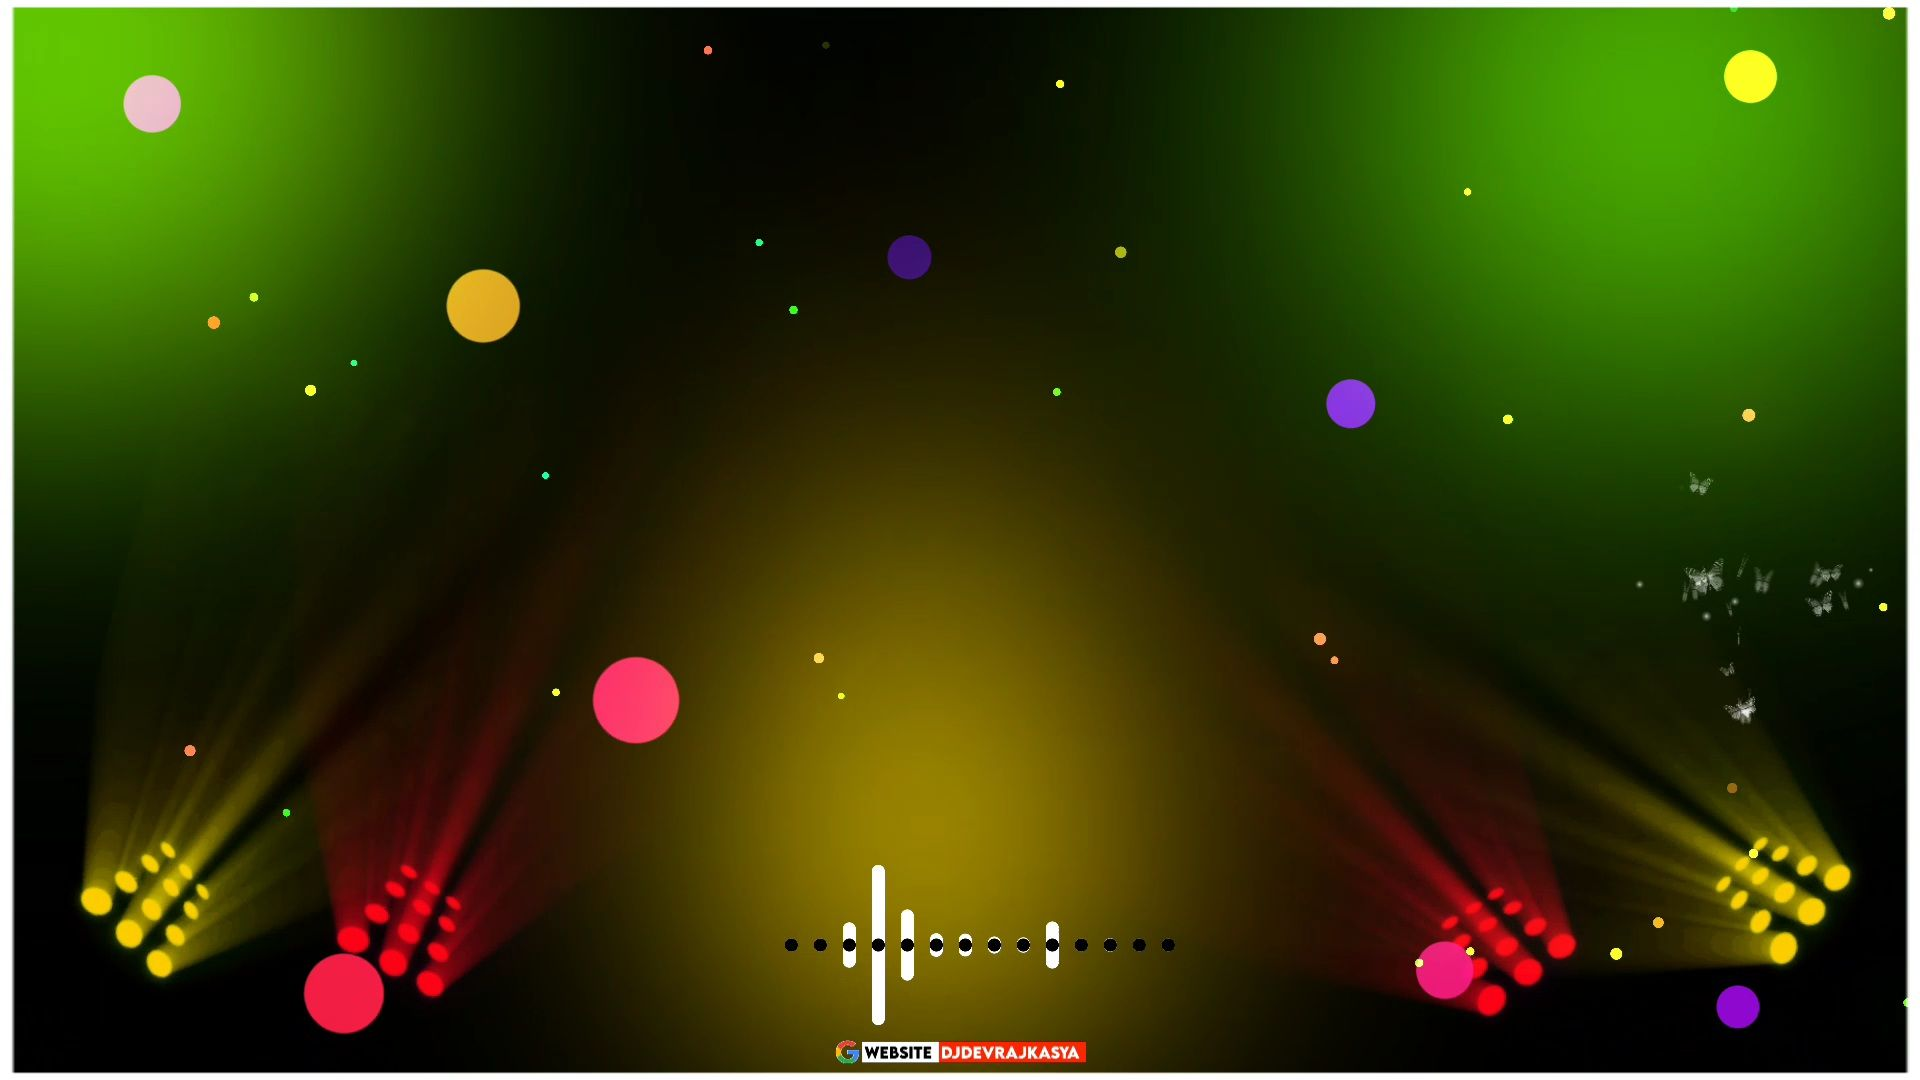 Awesome Green Screen Dj Light Avee Player Template Download